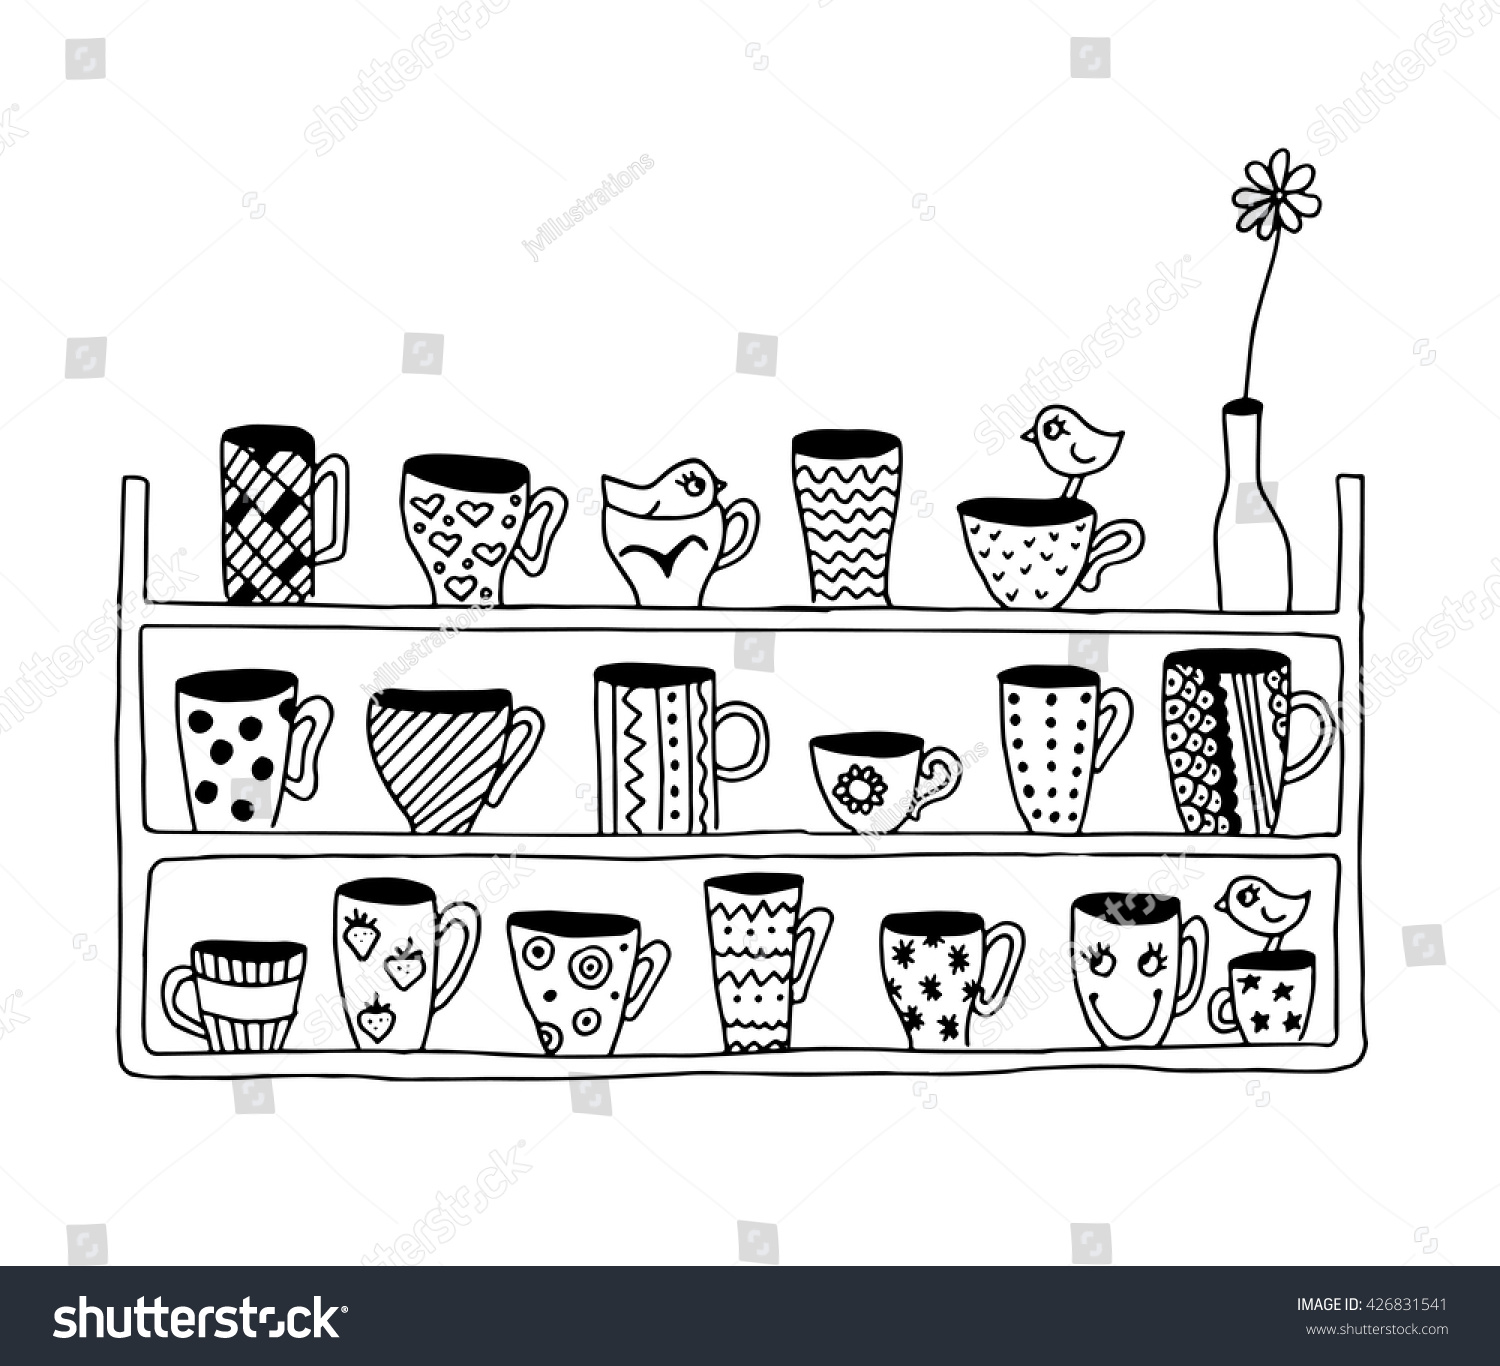 coloring page kids birds on kitchen stock vector 426831541